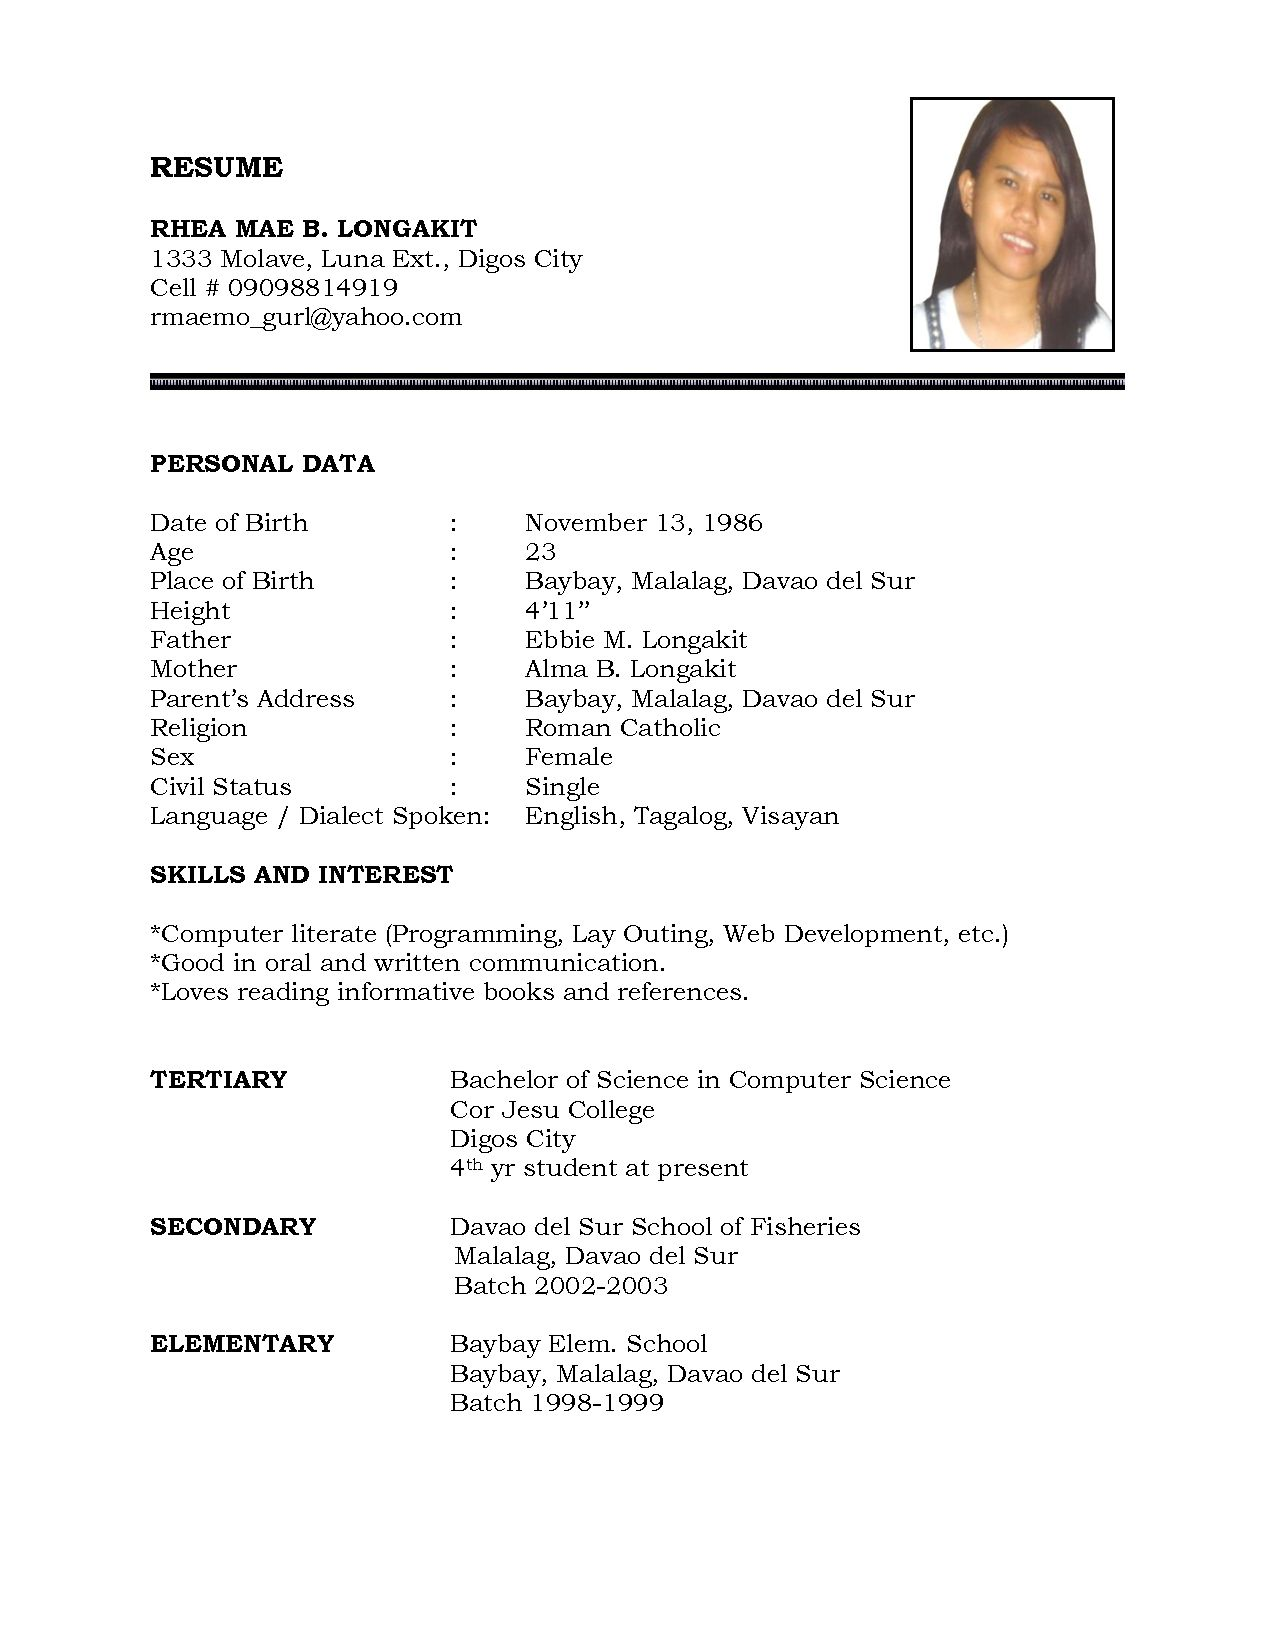 Example Of Resume Draft